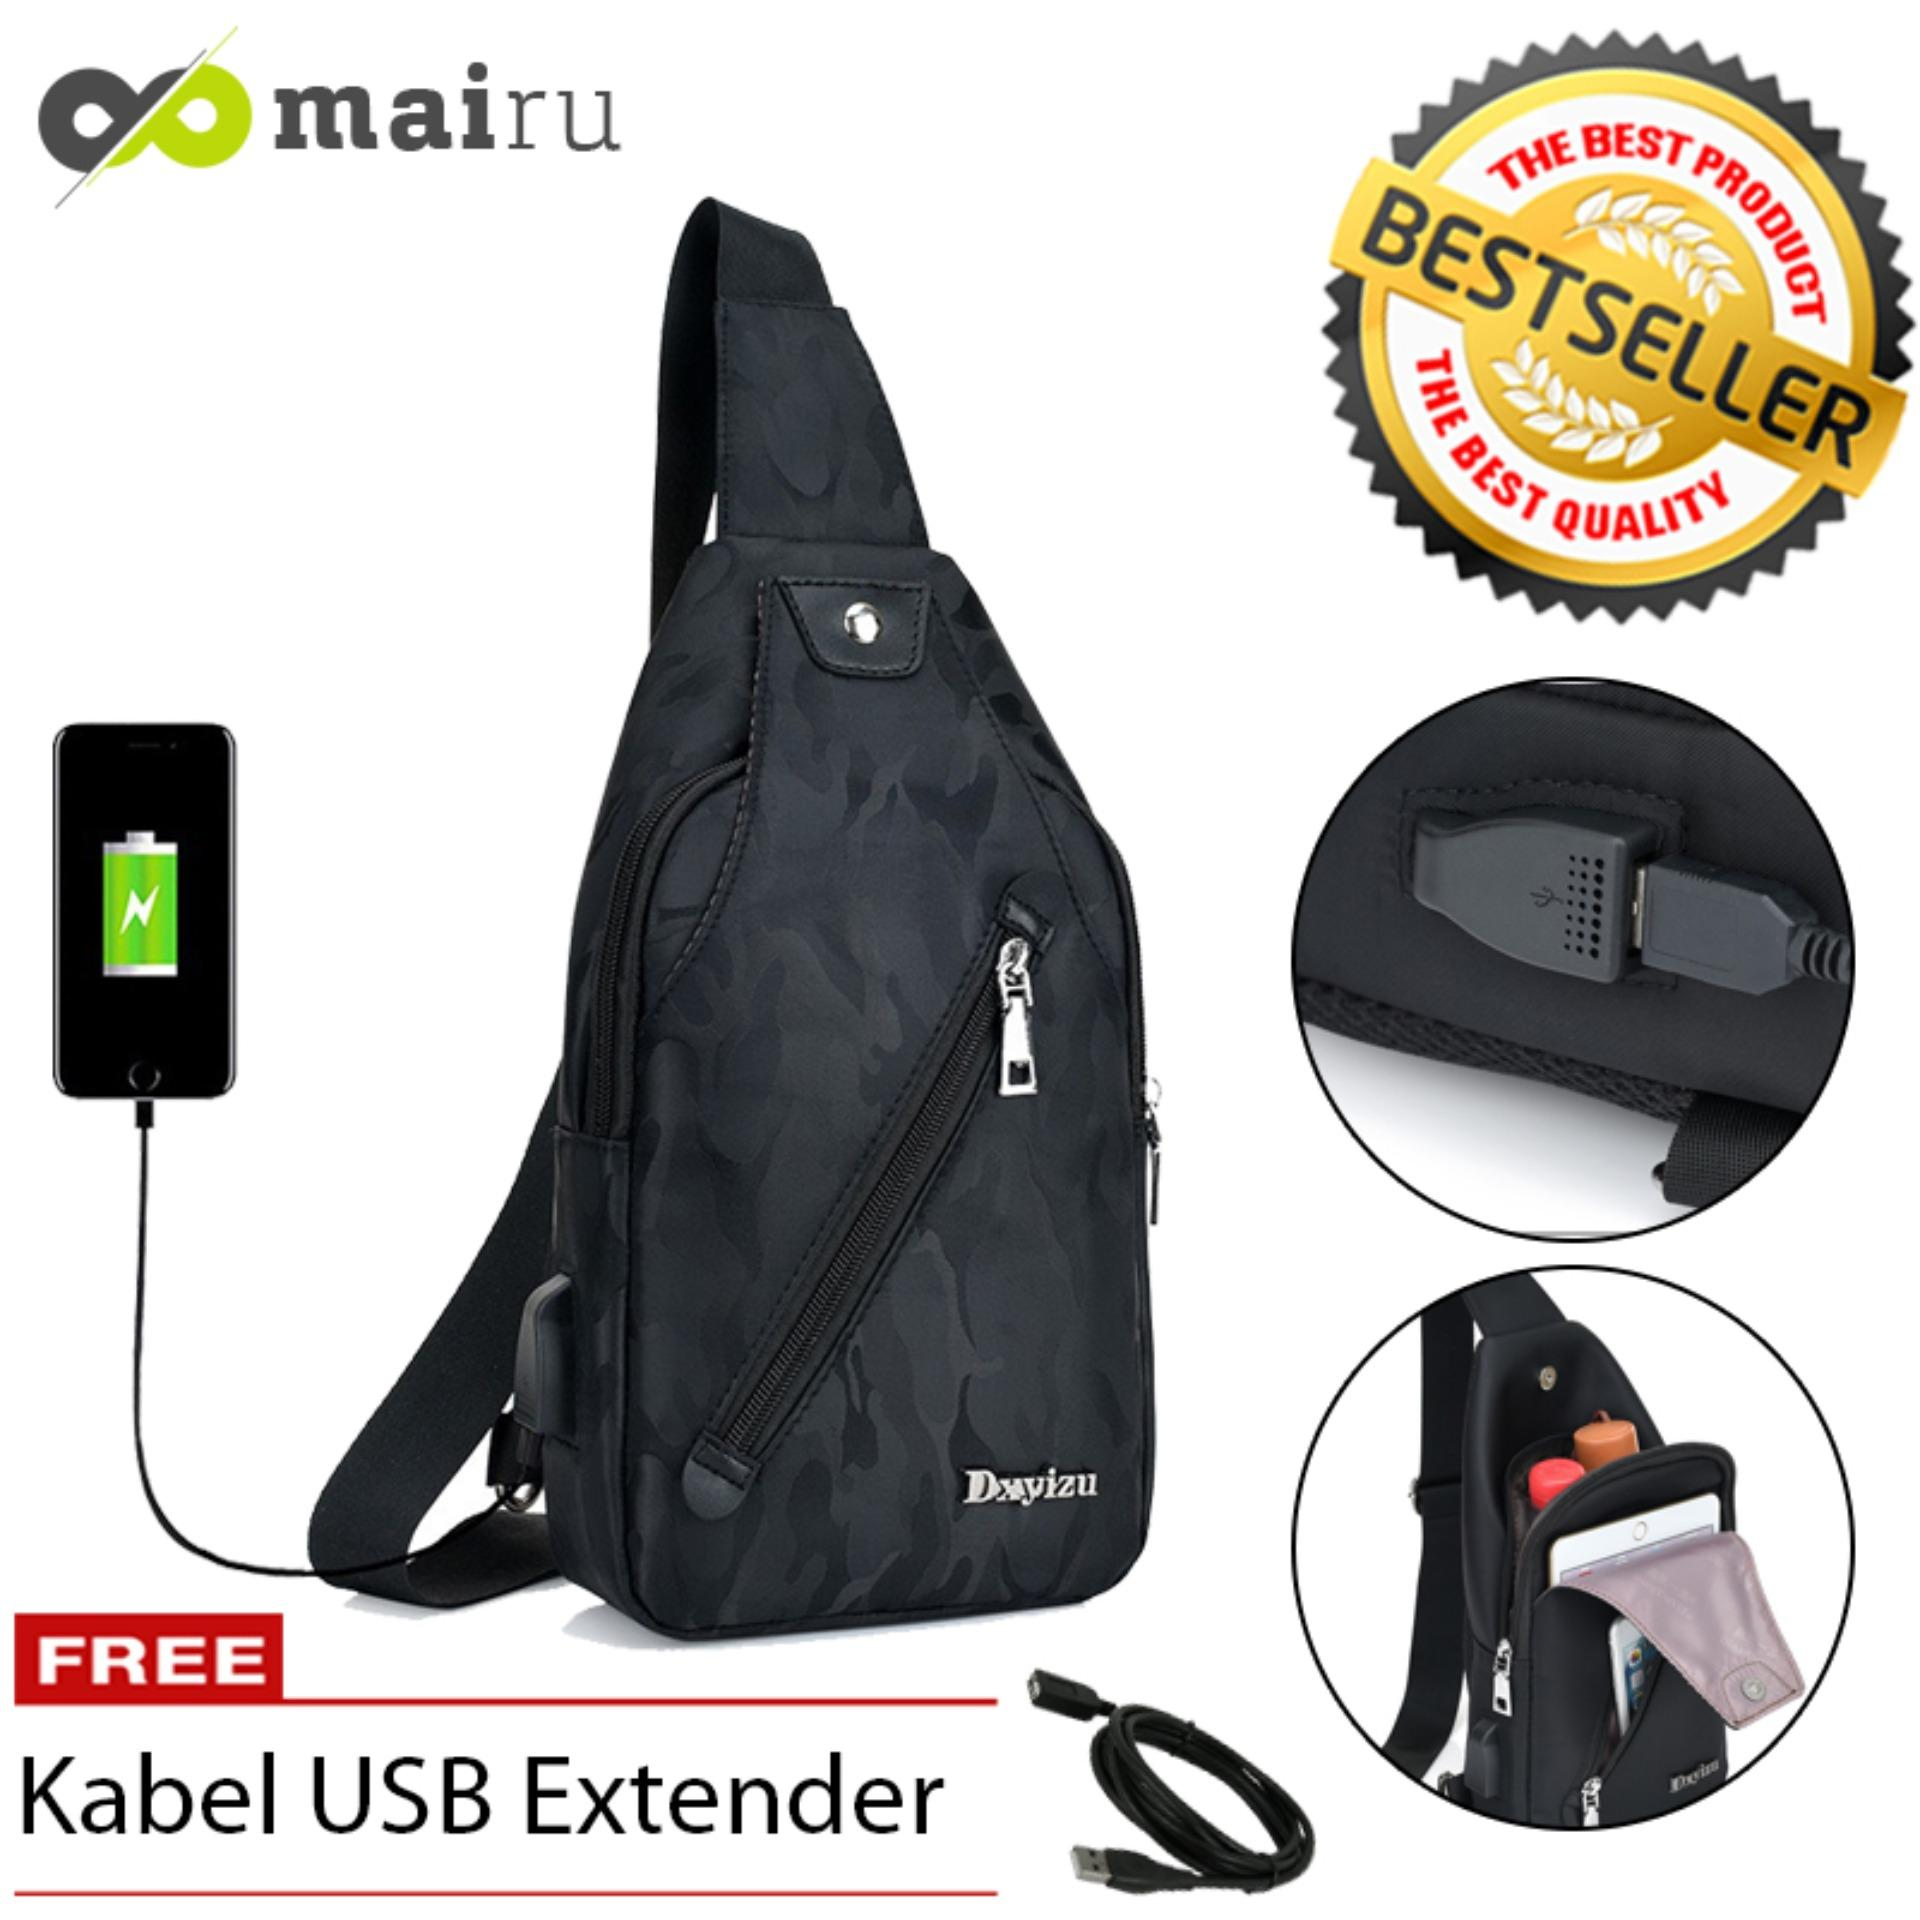 Toko Mairu Dxyizu 533 Tas Selempang Pria Sling Bag Cross Body With Usb Charger Support For Iphone Ipad Mini Xiaomi Samsung Tab Tablet 8 Anti Theft Lengkap Di Indonesia